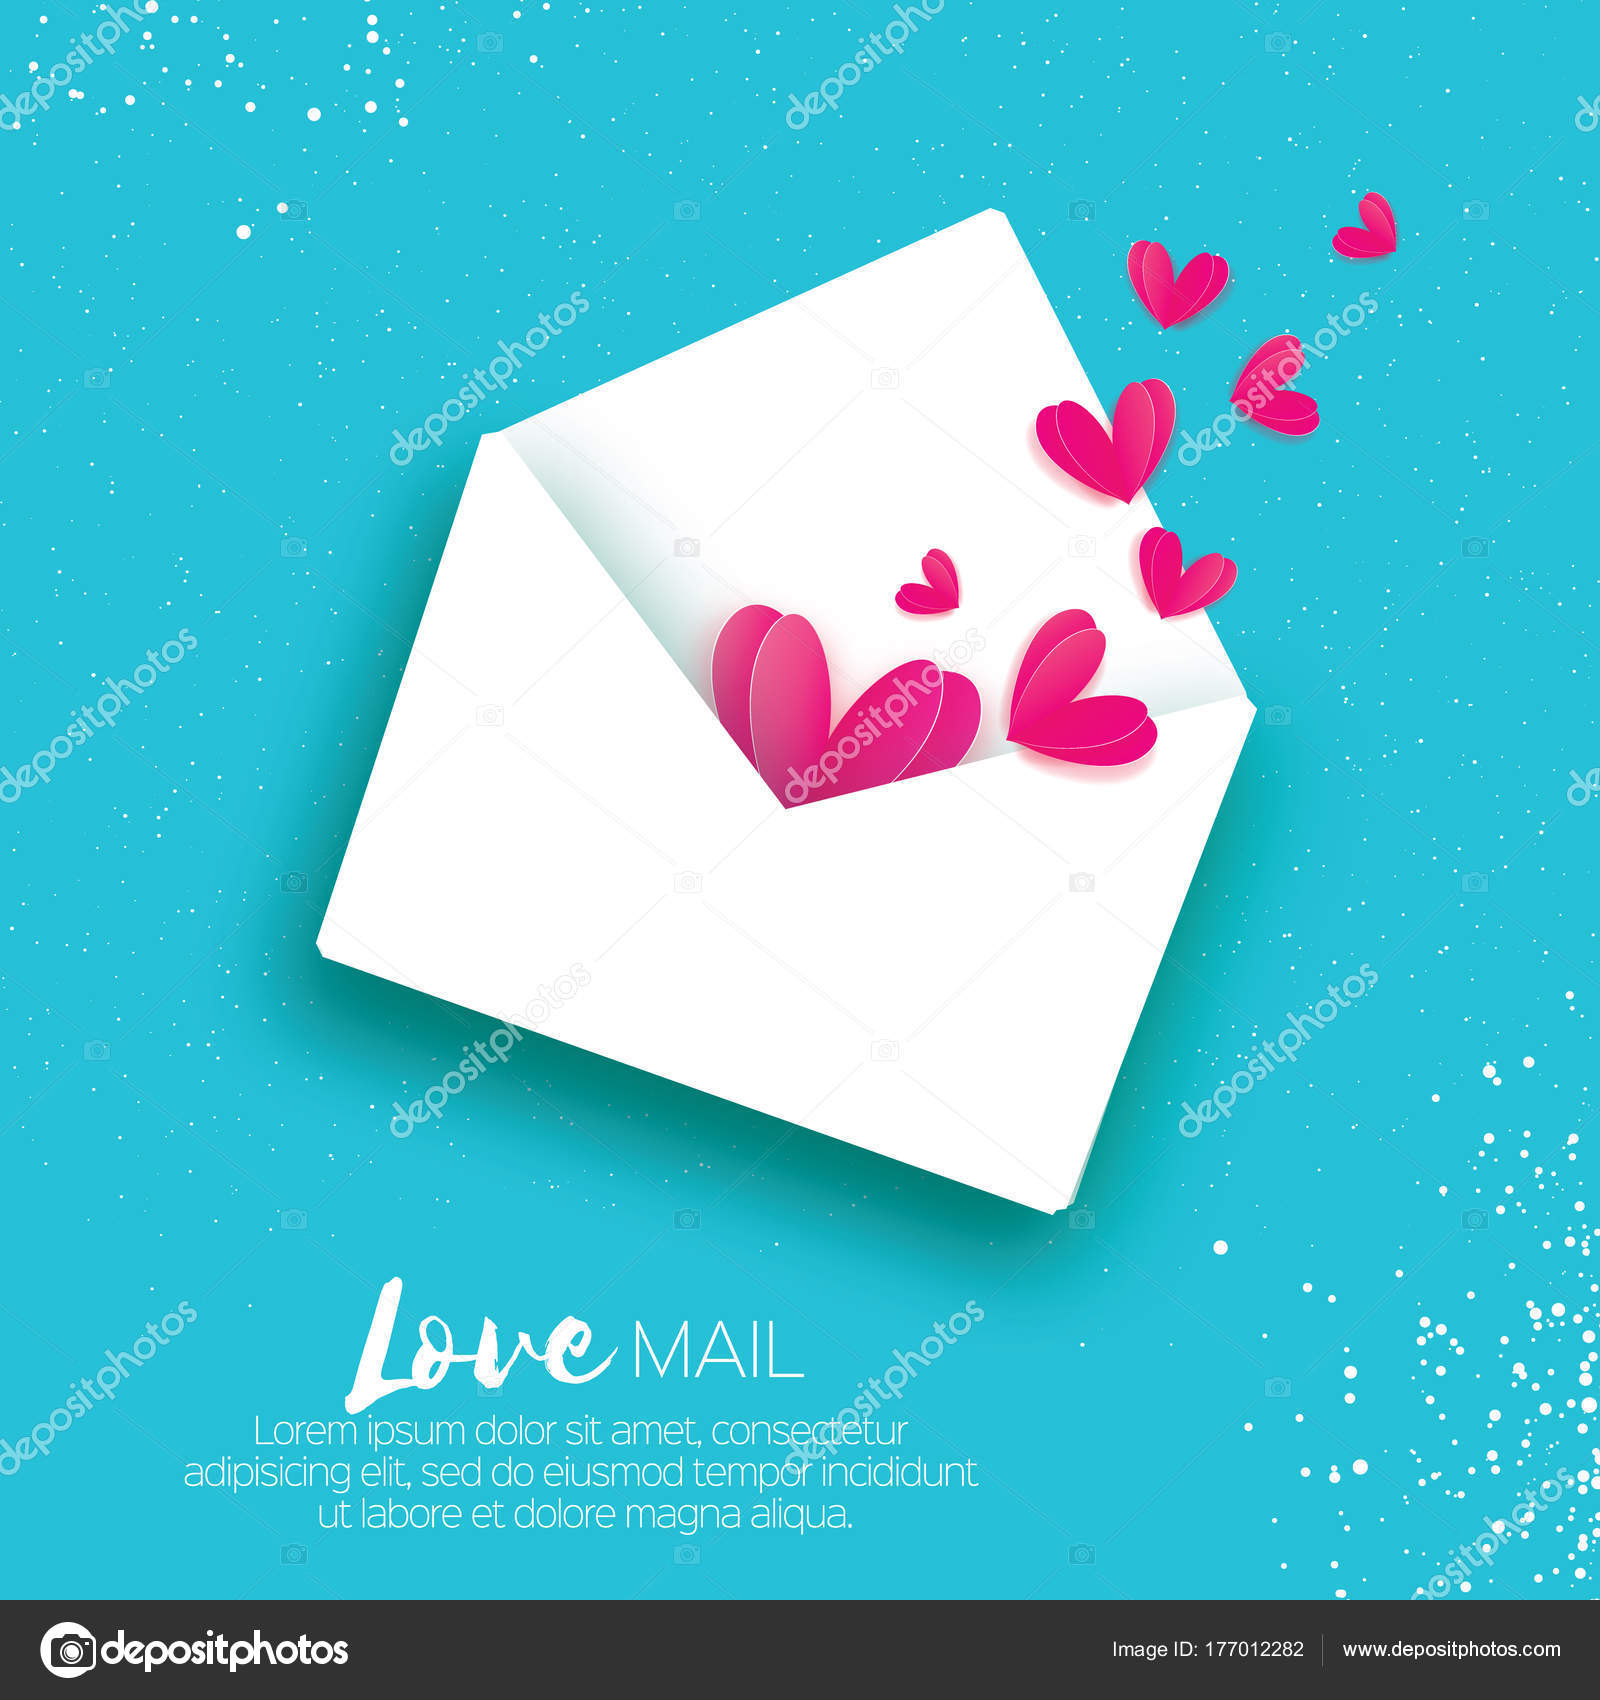 Greeting Card For Valentines Day Mail Love And Envelope In Paper